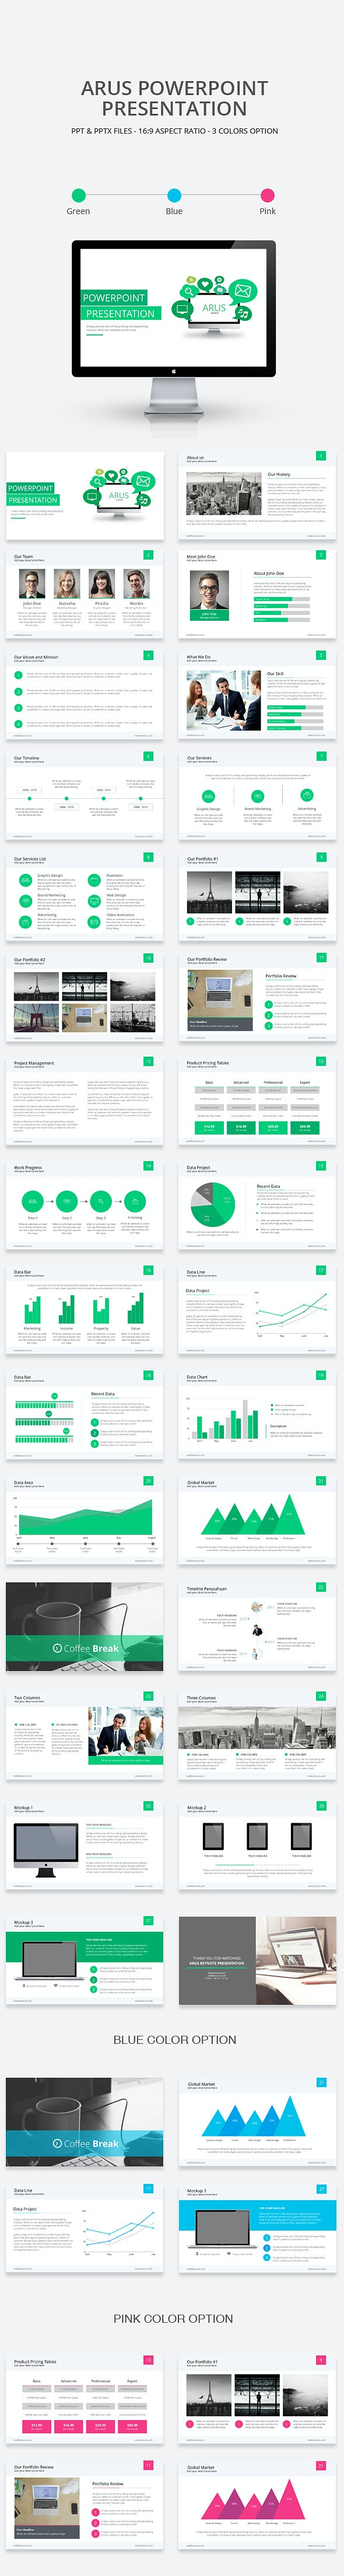 Arus Powerpoint Presentation Template - Business PowerPoint Templates